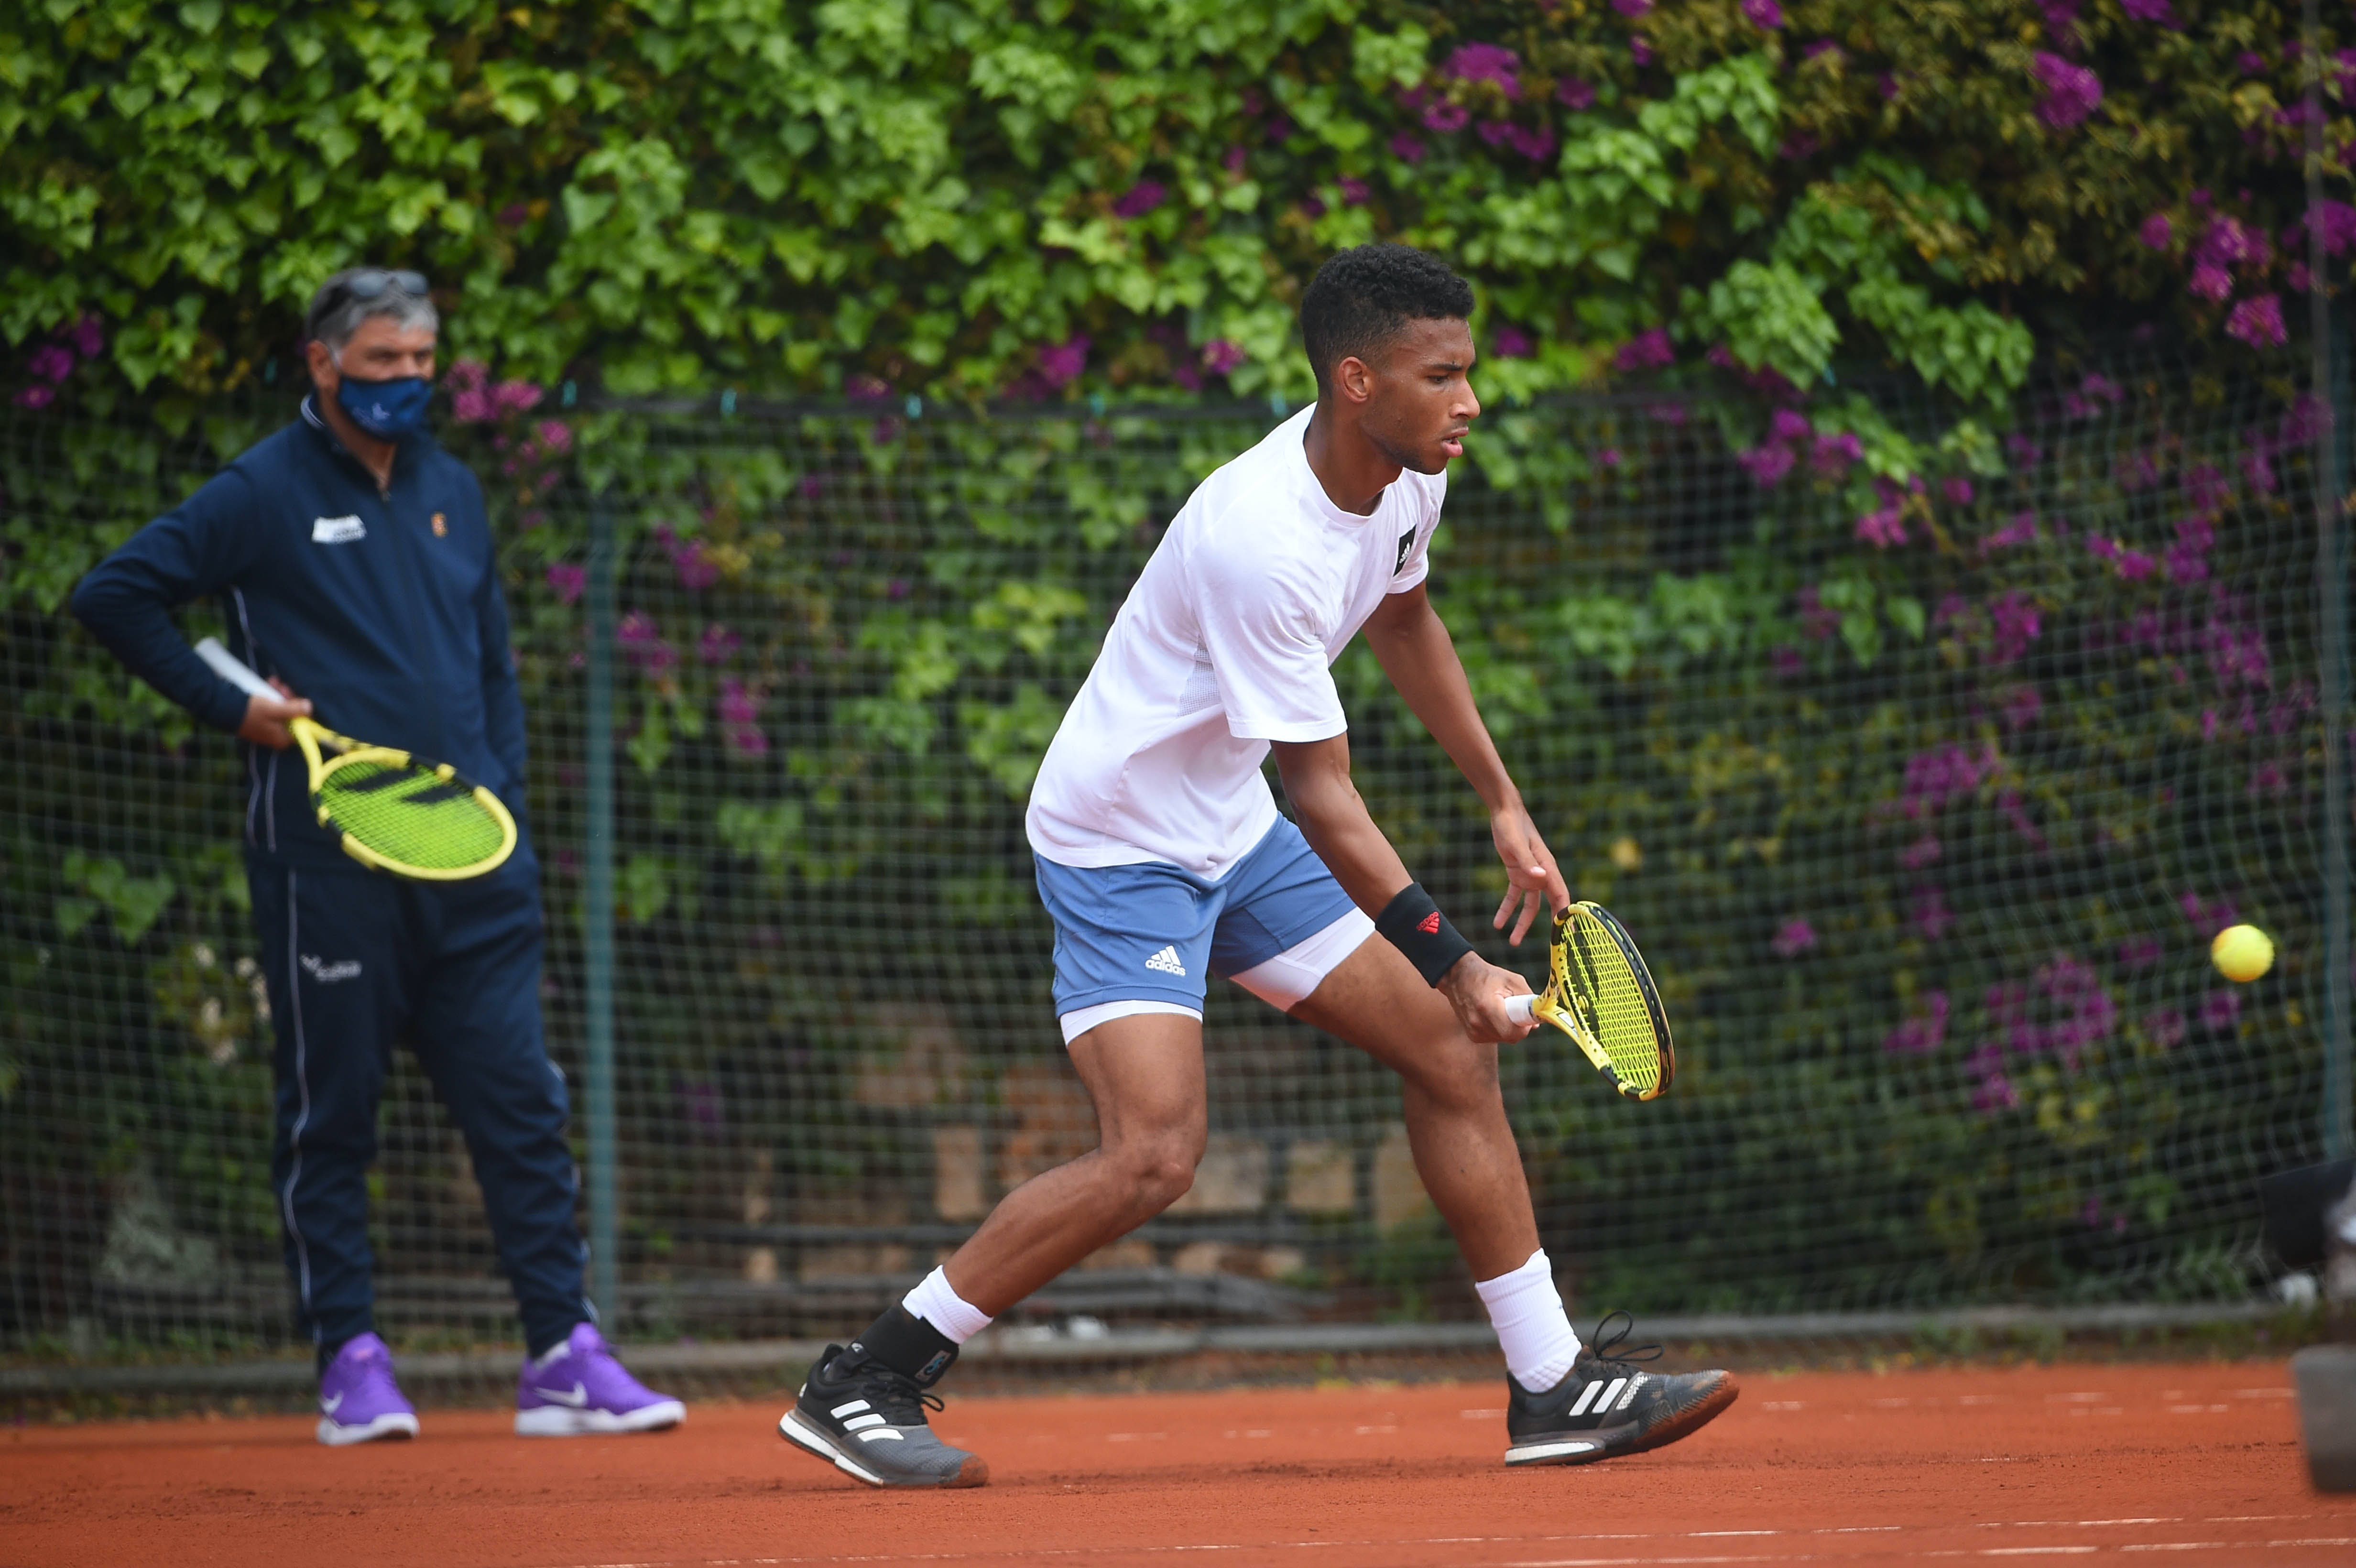 Toni Nadal coaching Felix Auger-Aliassime during practice at Rolex Monte-Carlo Masters 2021